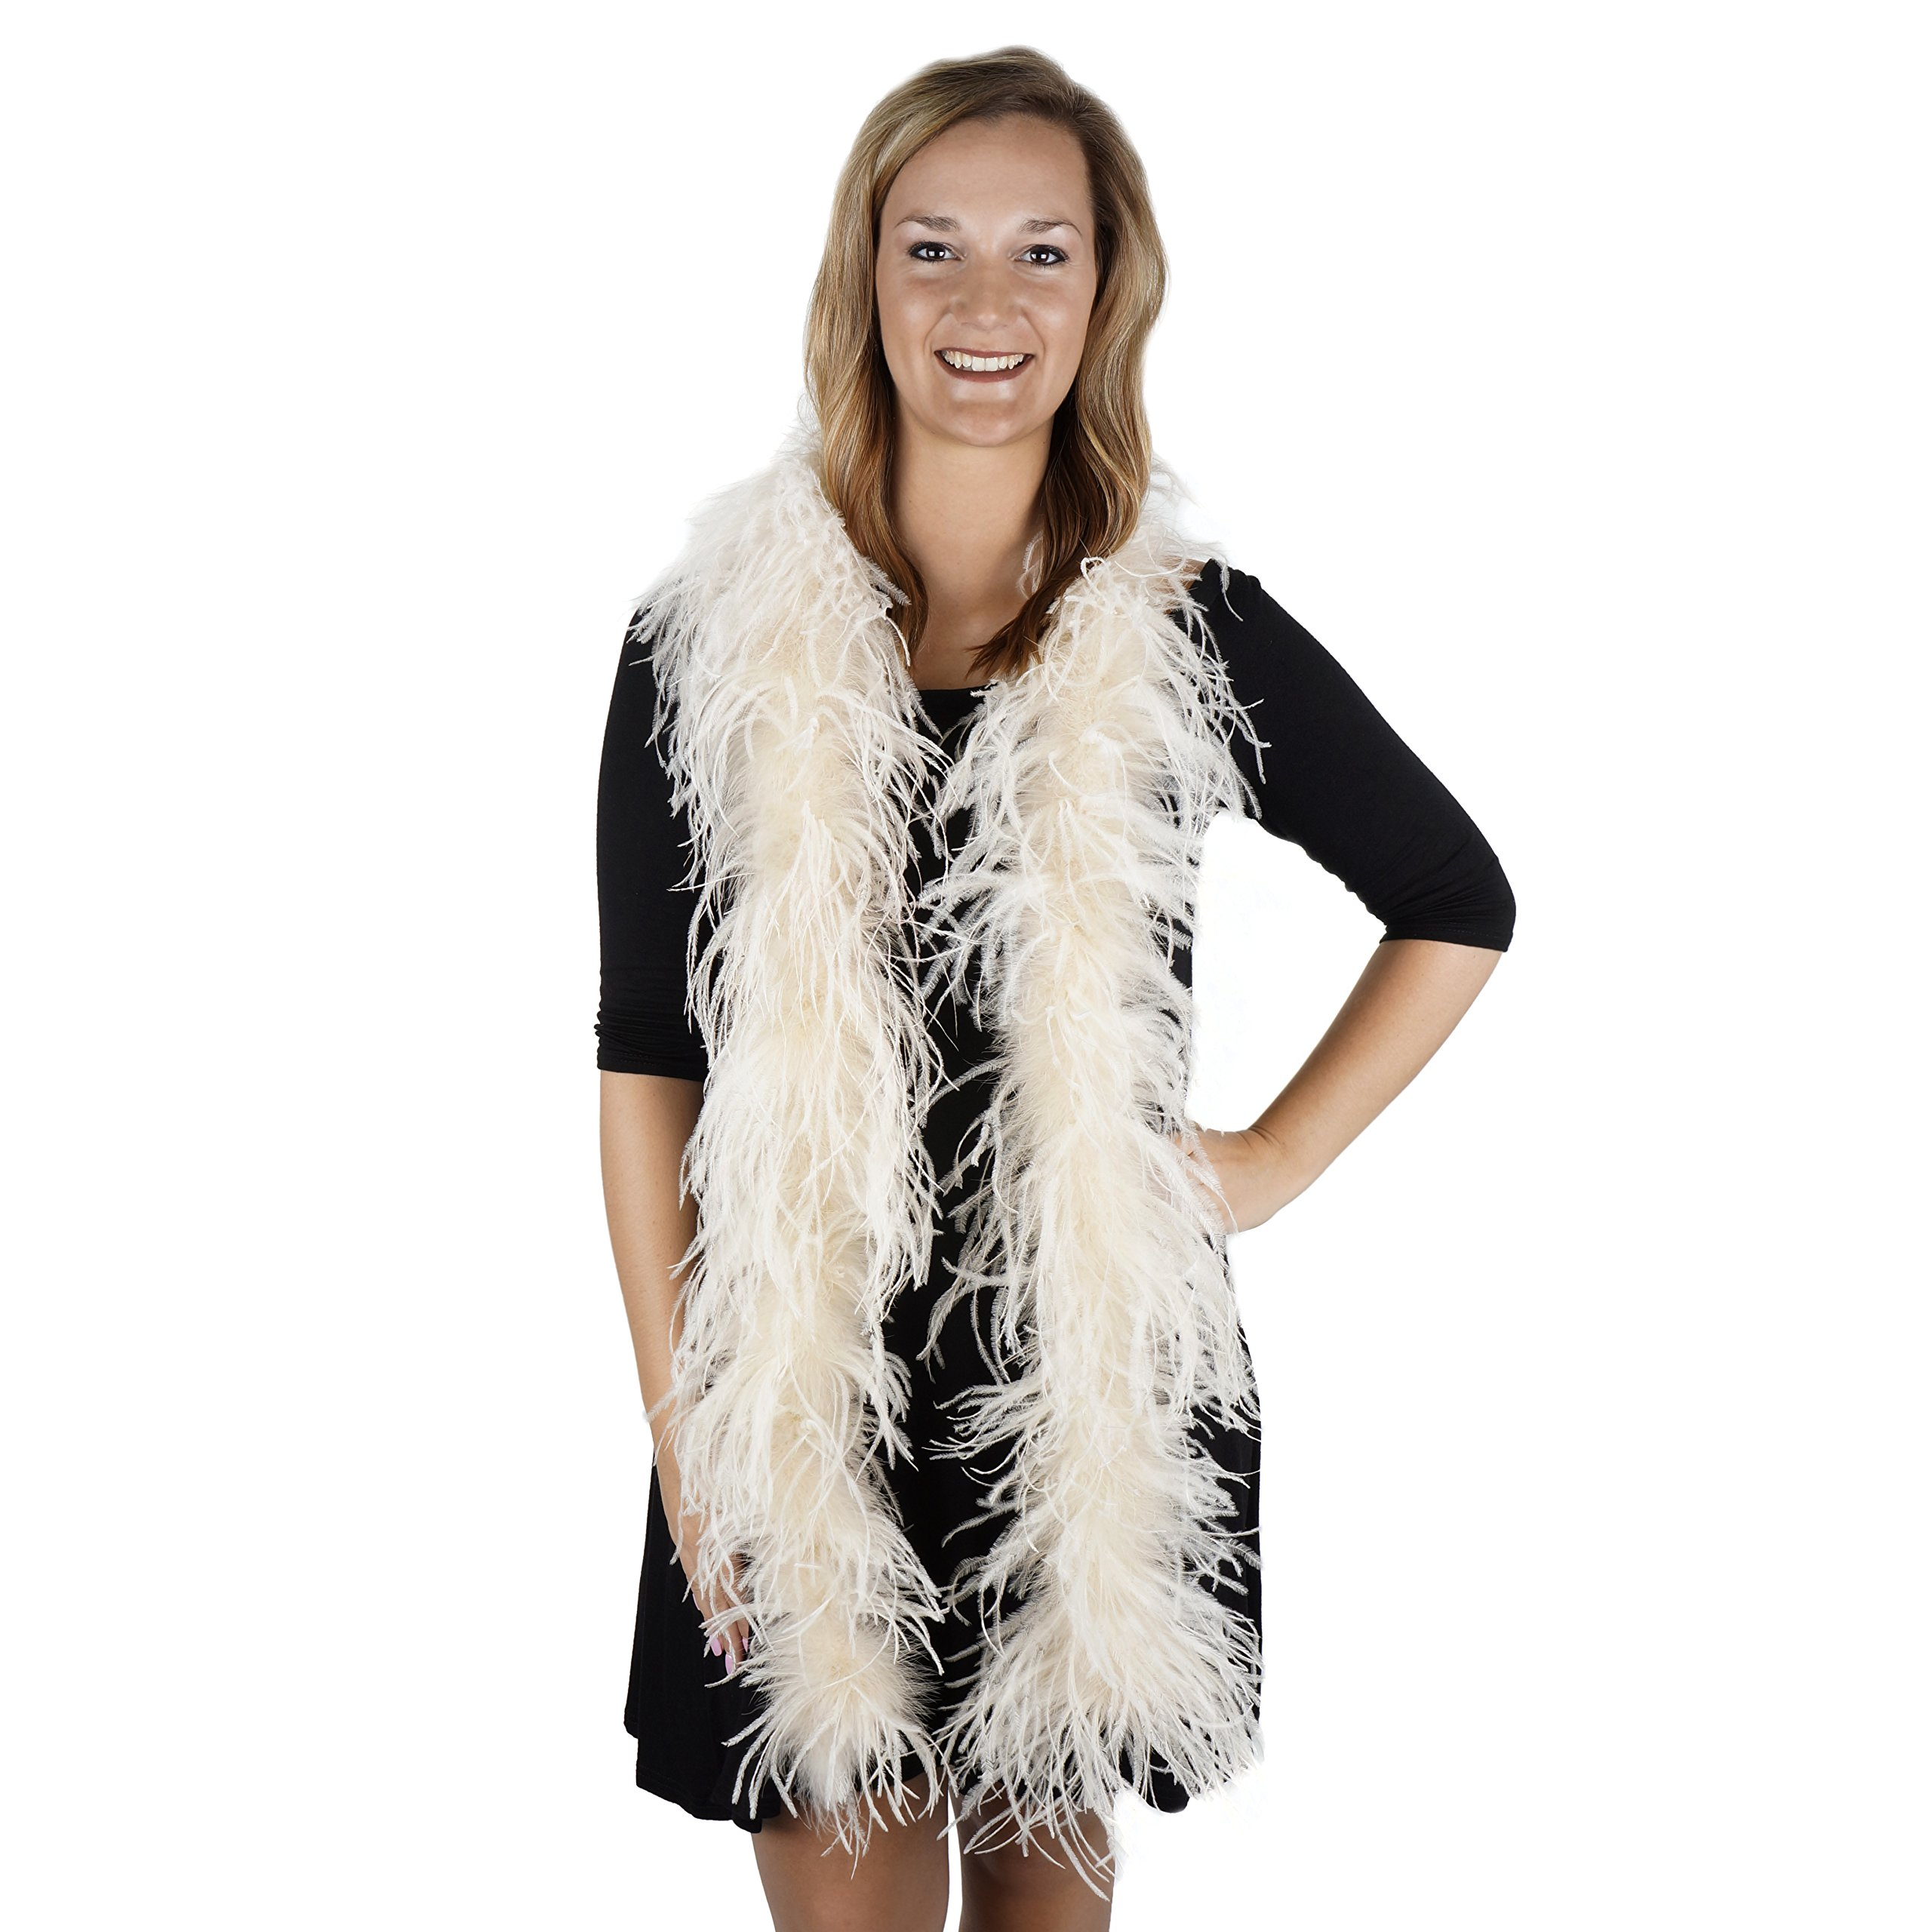 Zucker Feather (TM) - Ostrich Boas Solid Colors Ivory